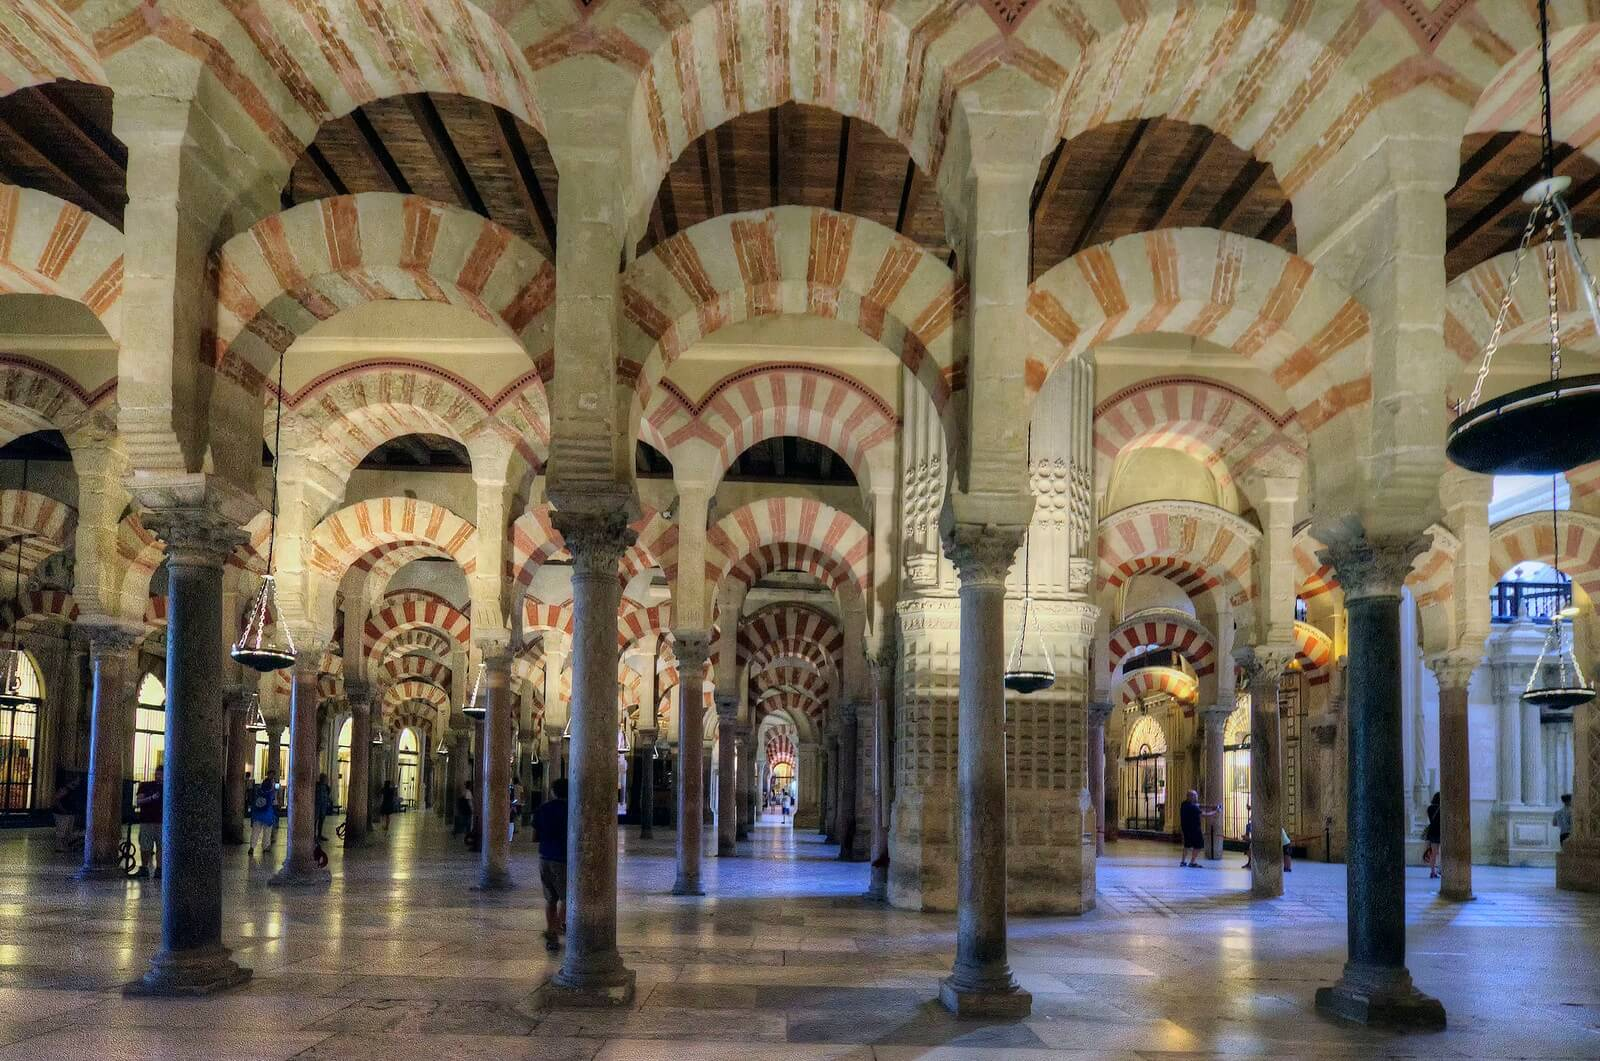 Top 10 virtual tours of Spain - 7. Mezquita (Mosque) of Cordoba